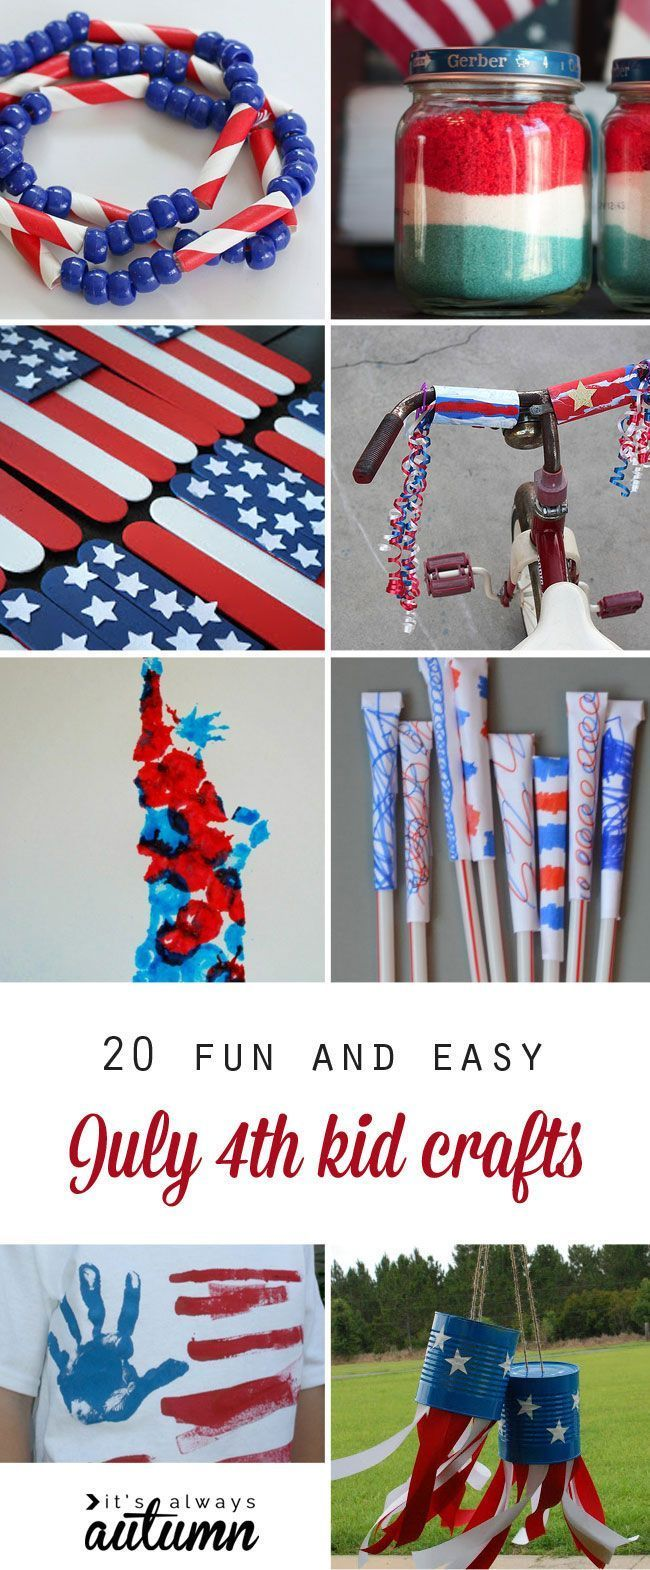 372 best kids 4th of july activities images on pinterest july